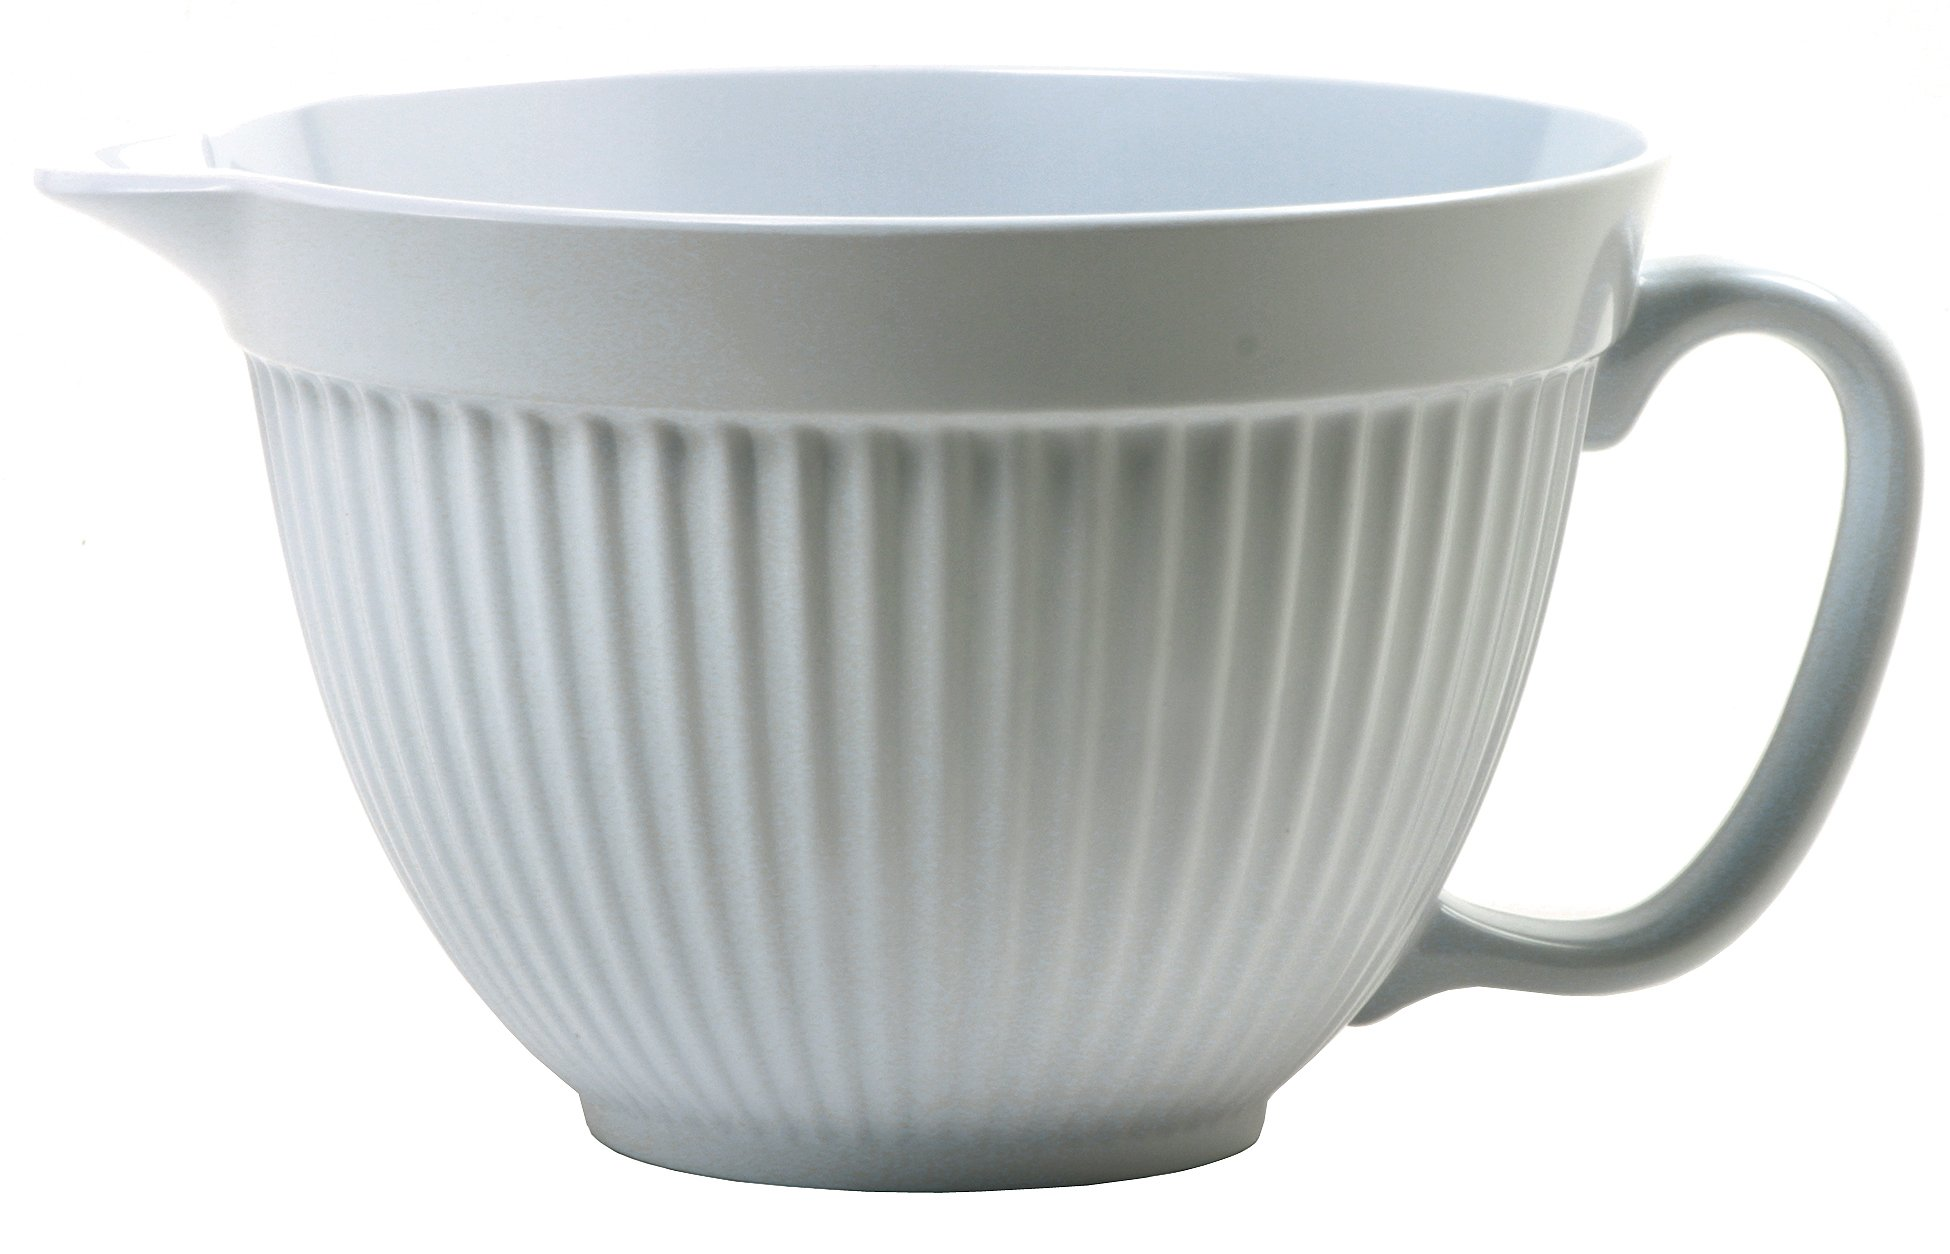 Norpro Grip-EZ 3-Quart Melamine Batter Bowl, White by Norpro (Image #1)